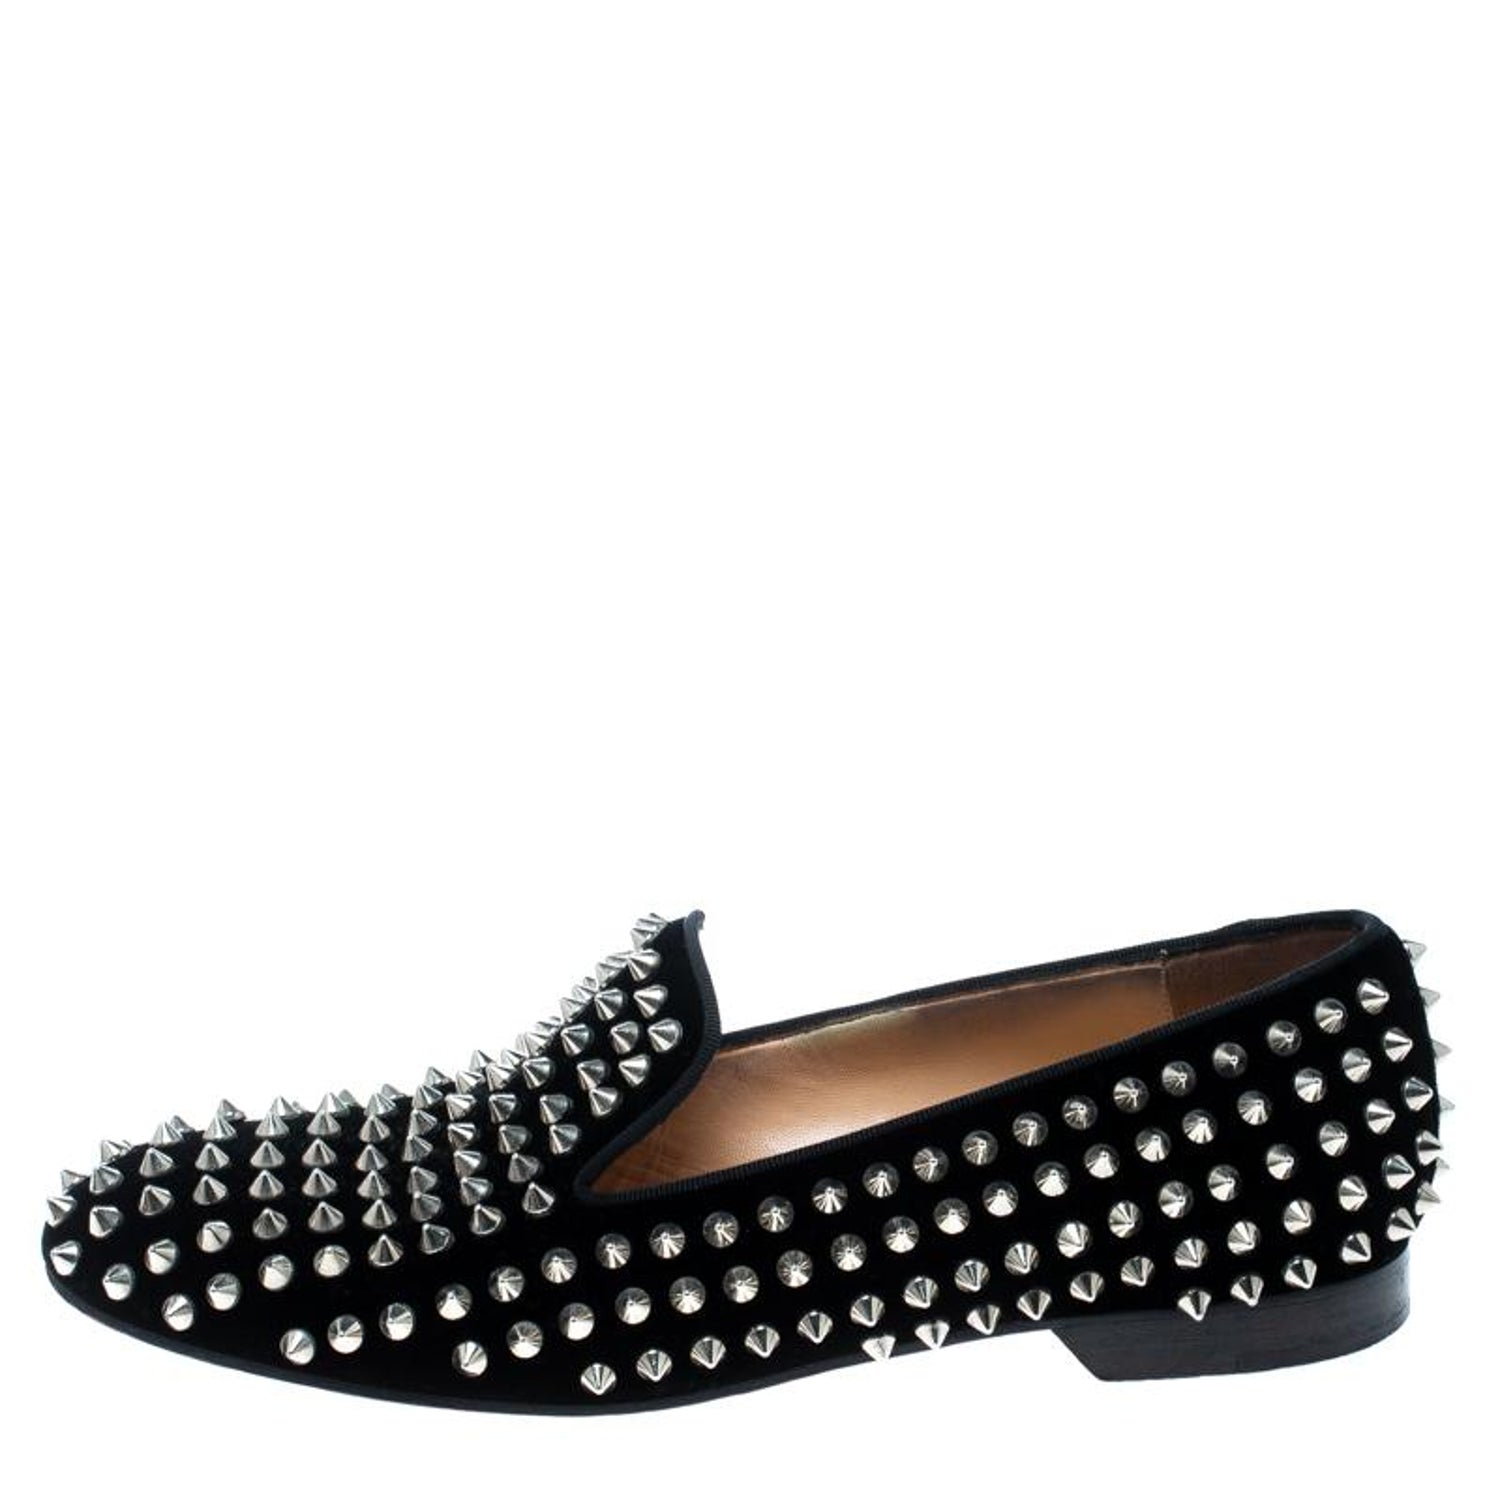 66a1898597c1 Christian Louboutin Black Velvet Rollerboy Spikes Flat Size 39 For Sale at  1stdibs